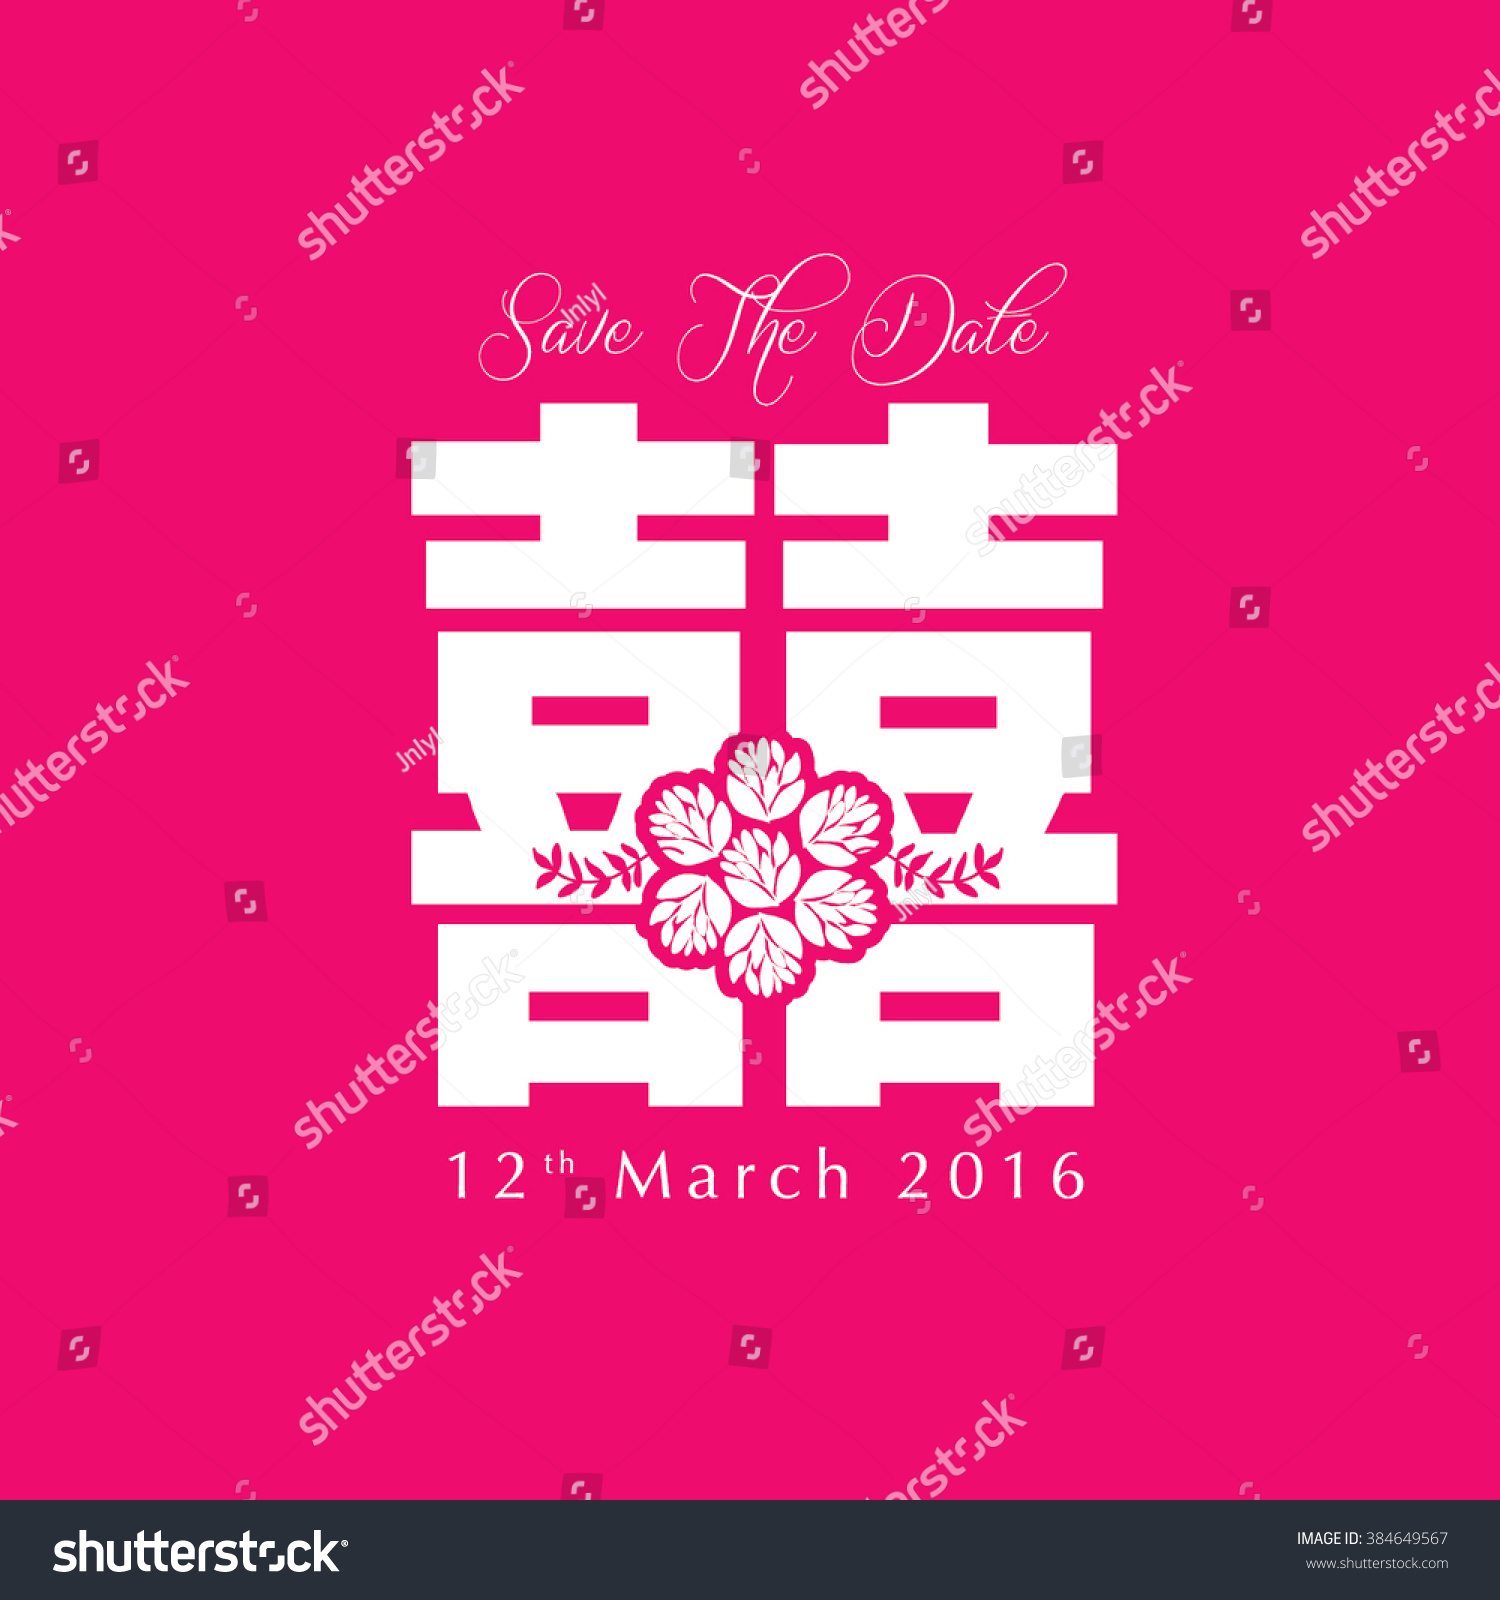 Chinese Wedding Card Double Happiness Typography Design Flora Illustration Save The Date